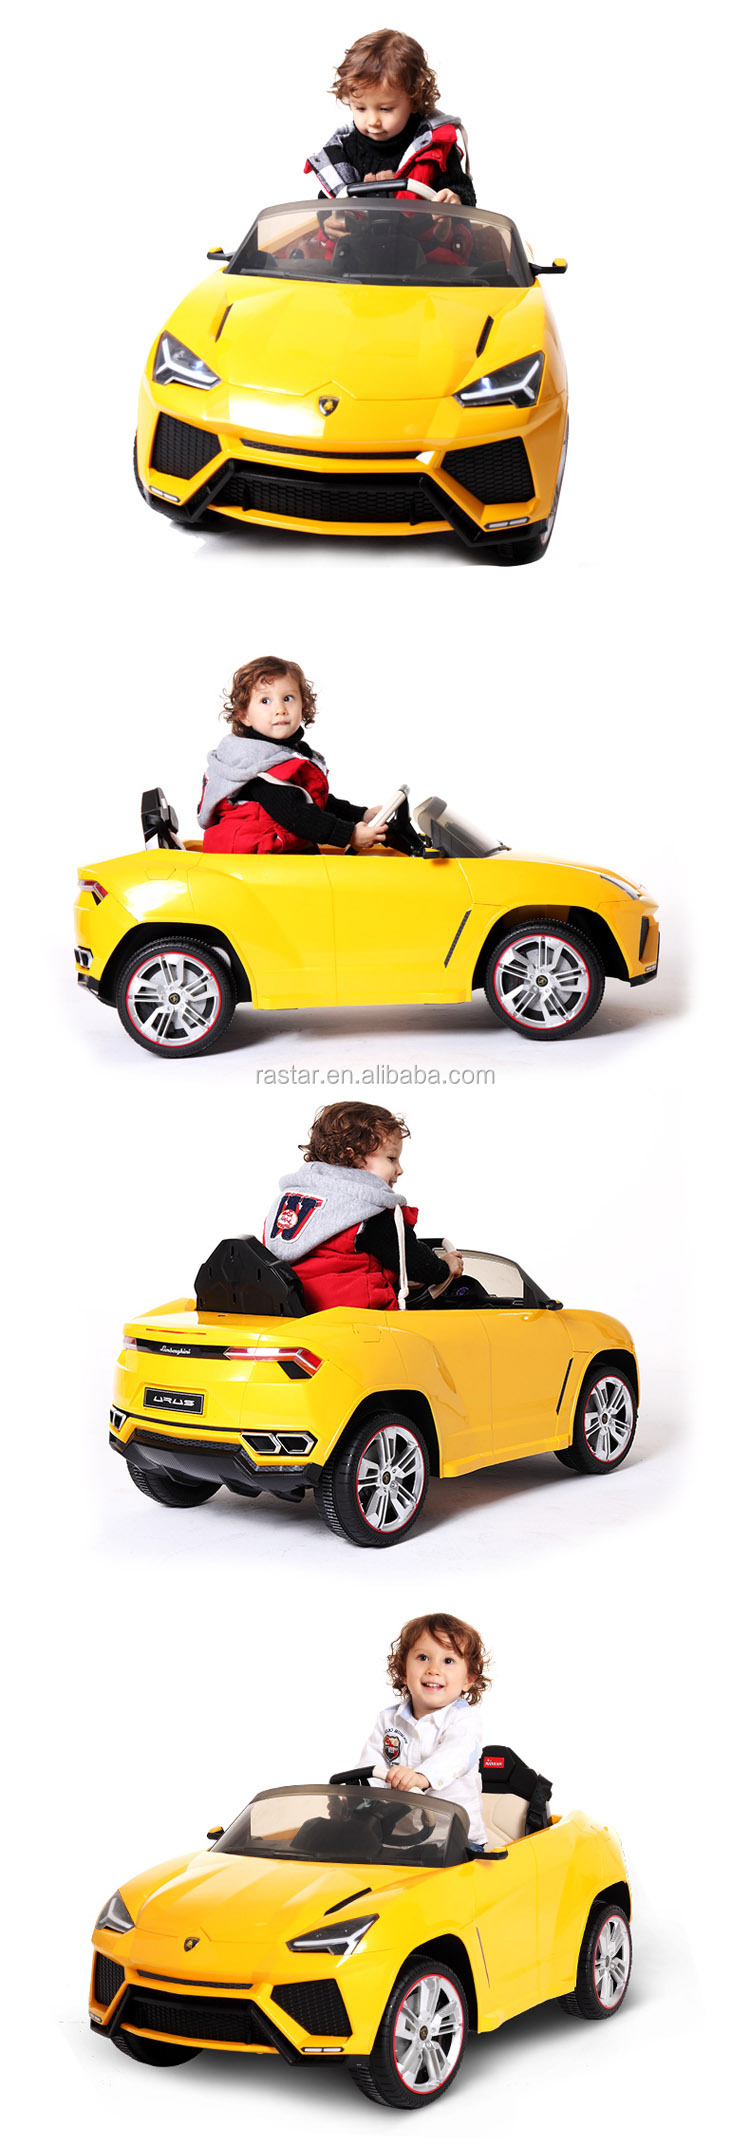 RASTAR plastic music toy electric kids lamborghini ride on car